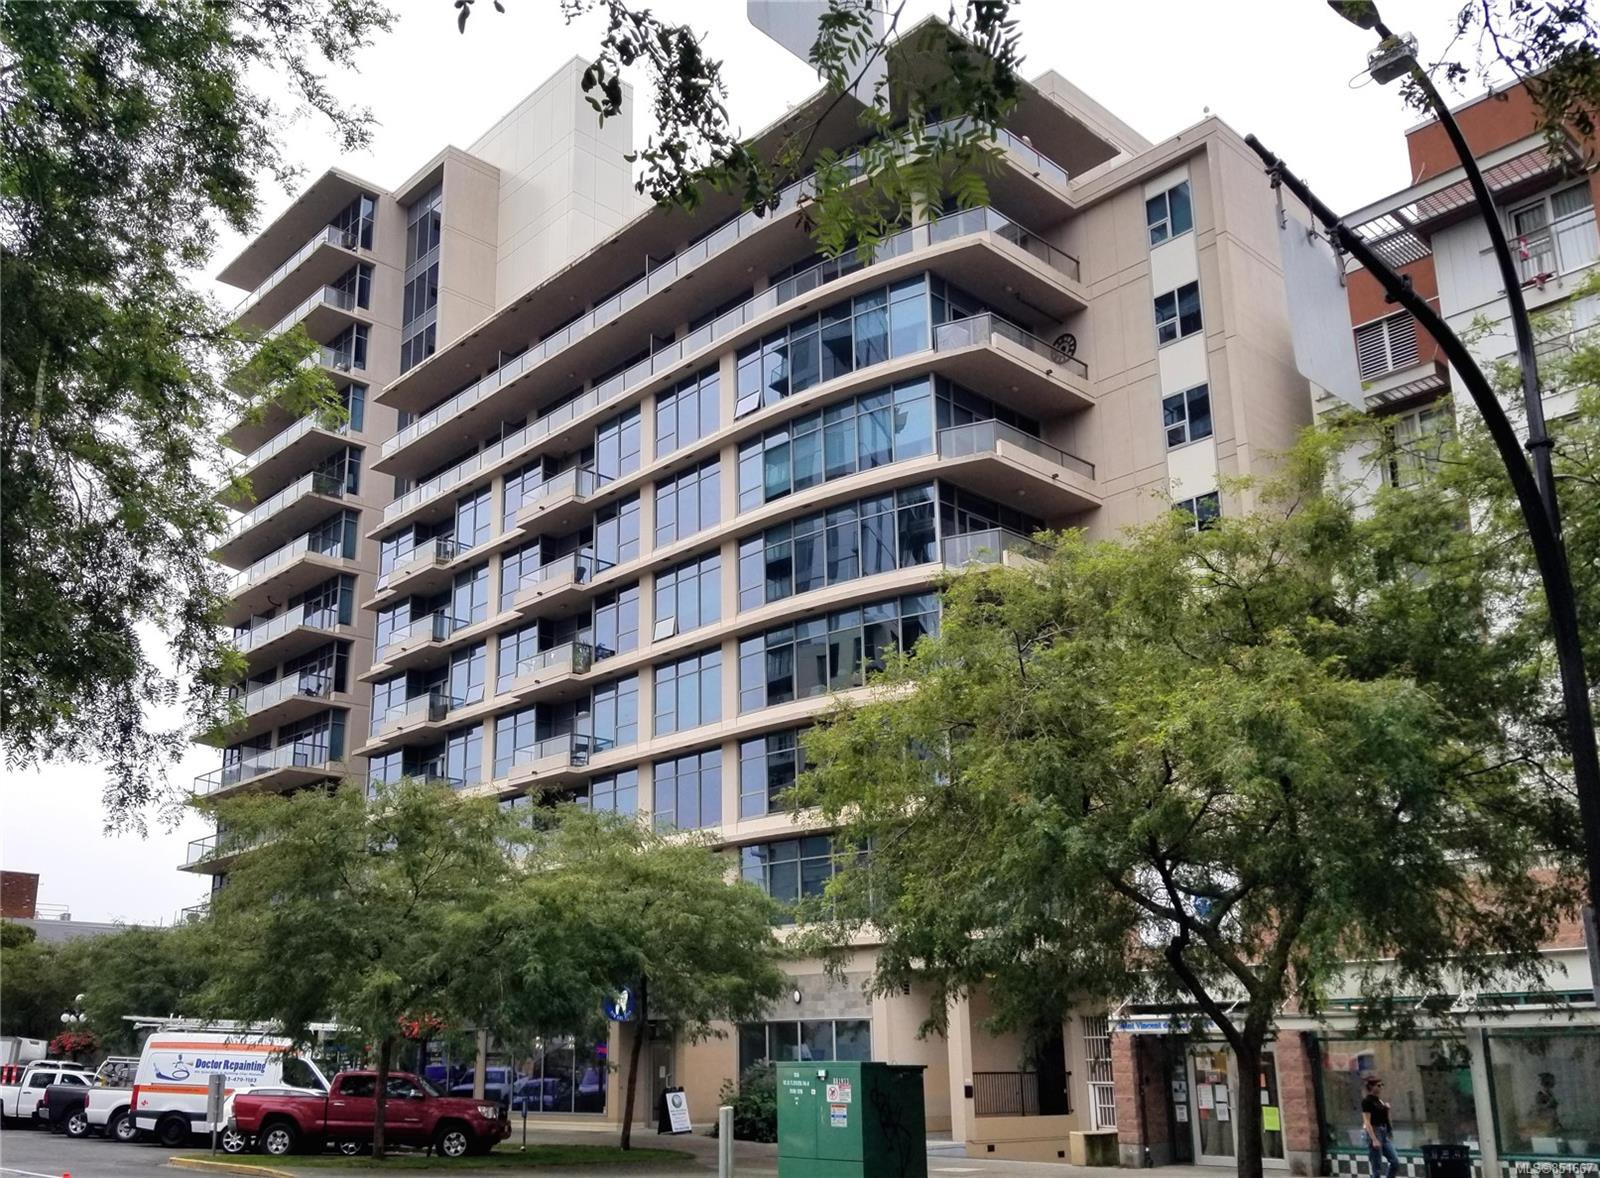 Main Photo: 811 845 Yates St in : Vi Downtown Condo Apartment for sale (Victoria)  : MLS®# 851667